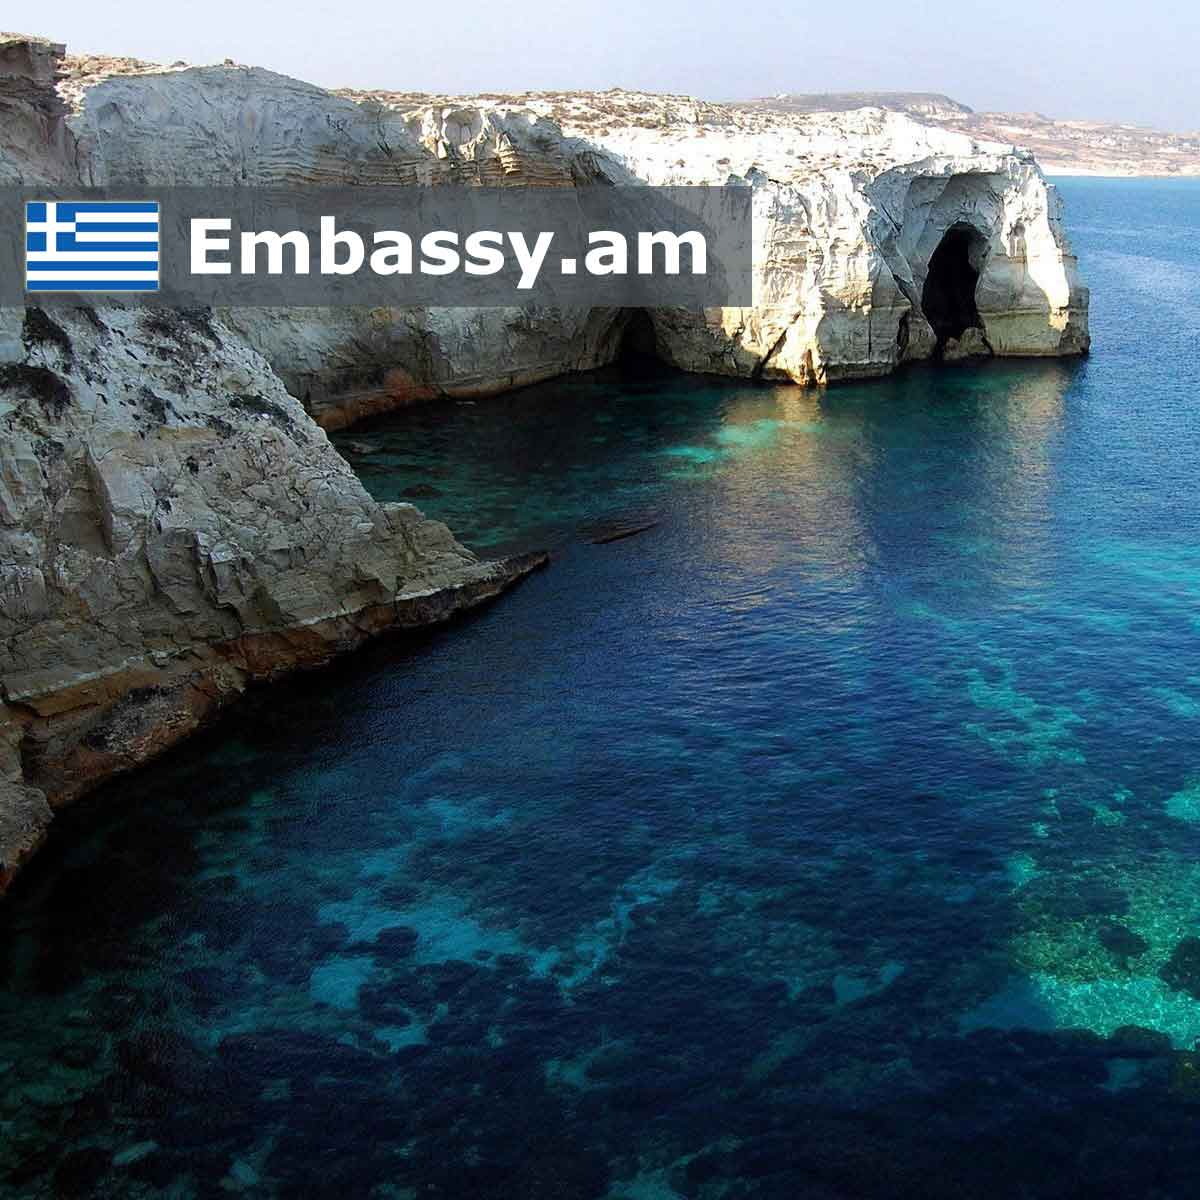 Milos - Hotels in Greece - Embassy.am